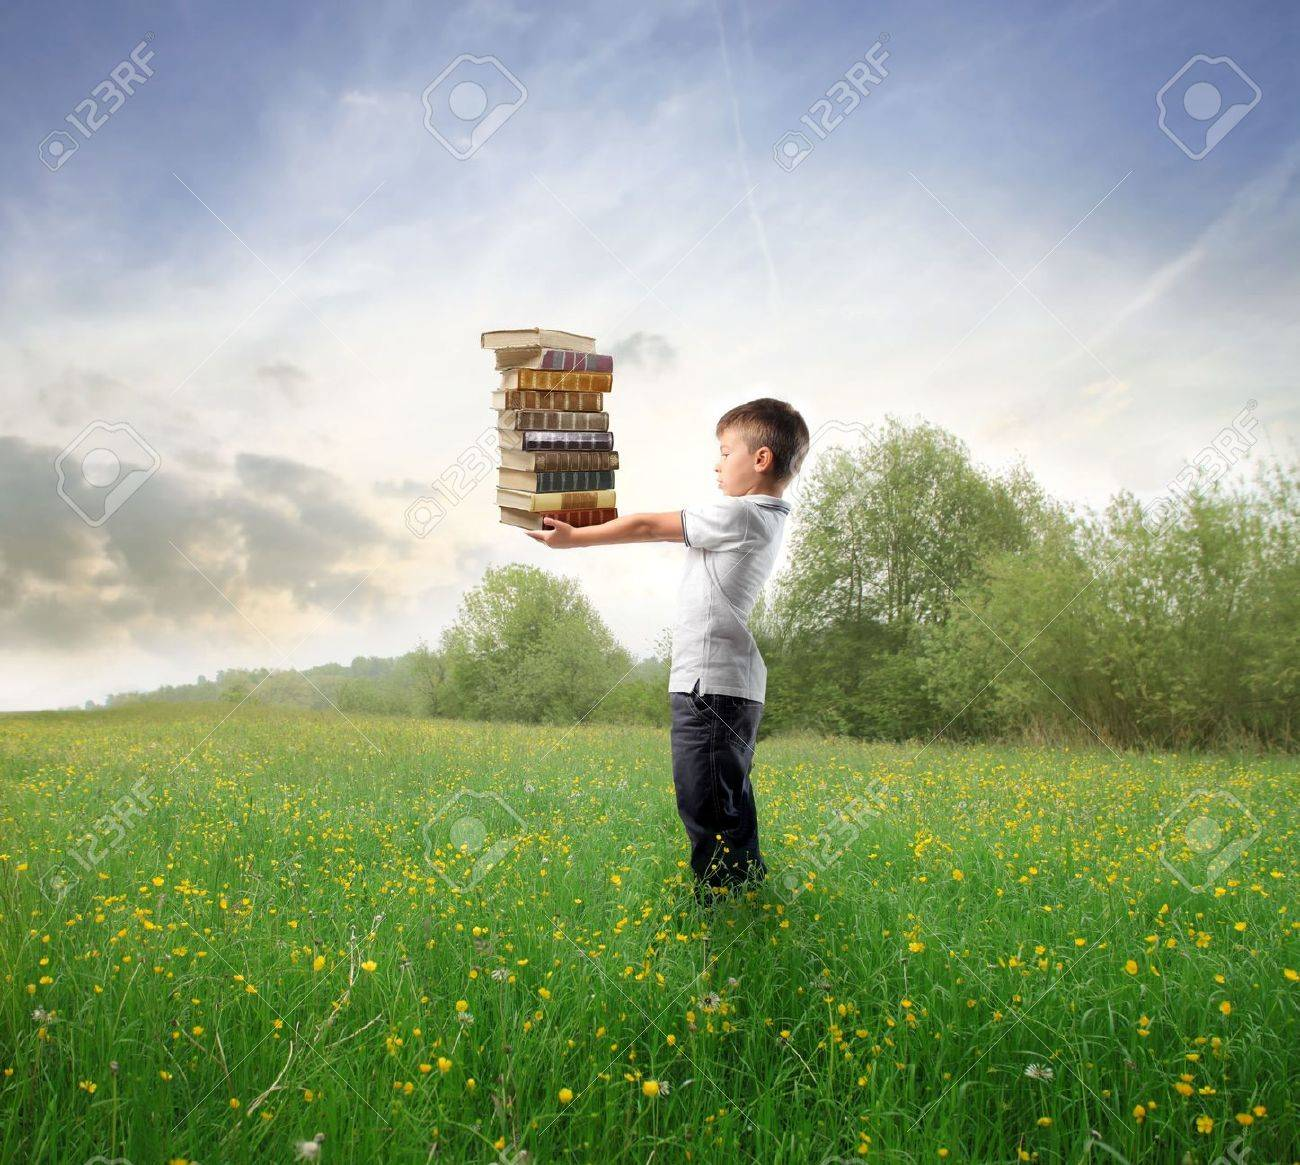 Child standing on a green meadowand holding some books - 8054408